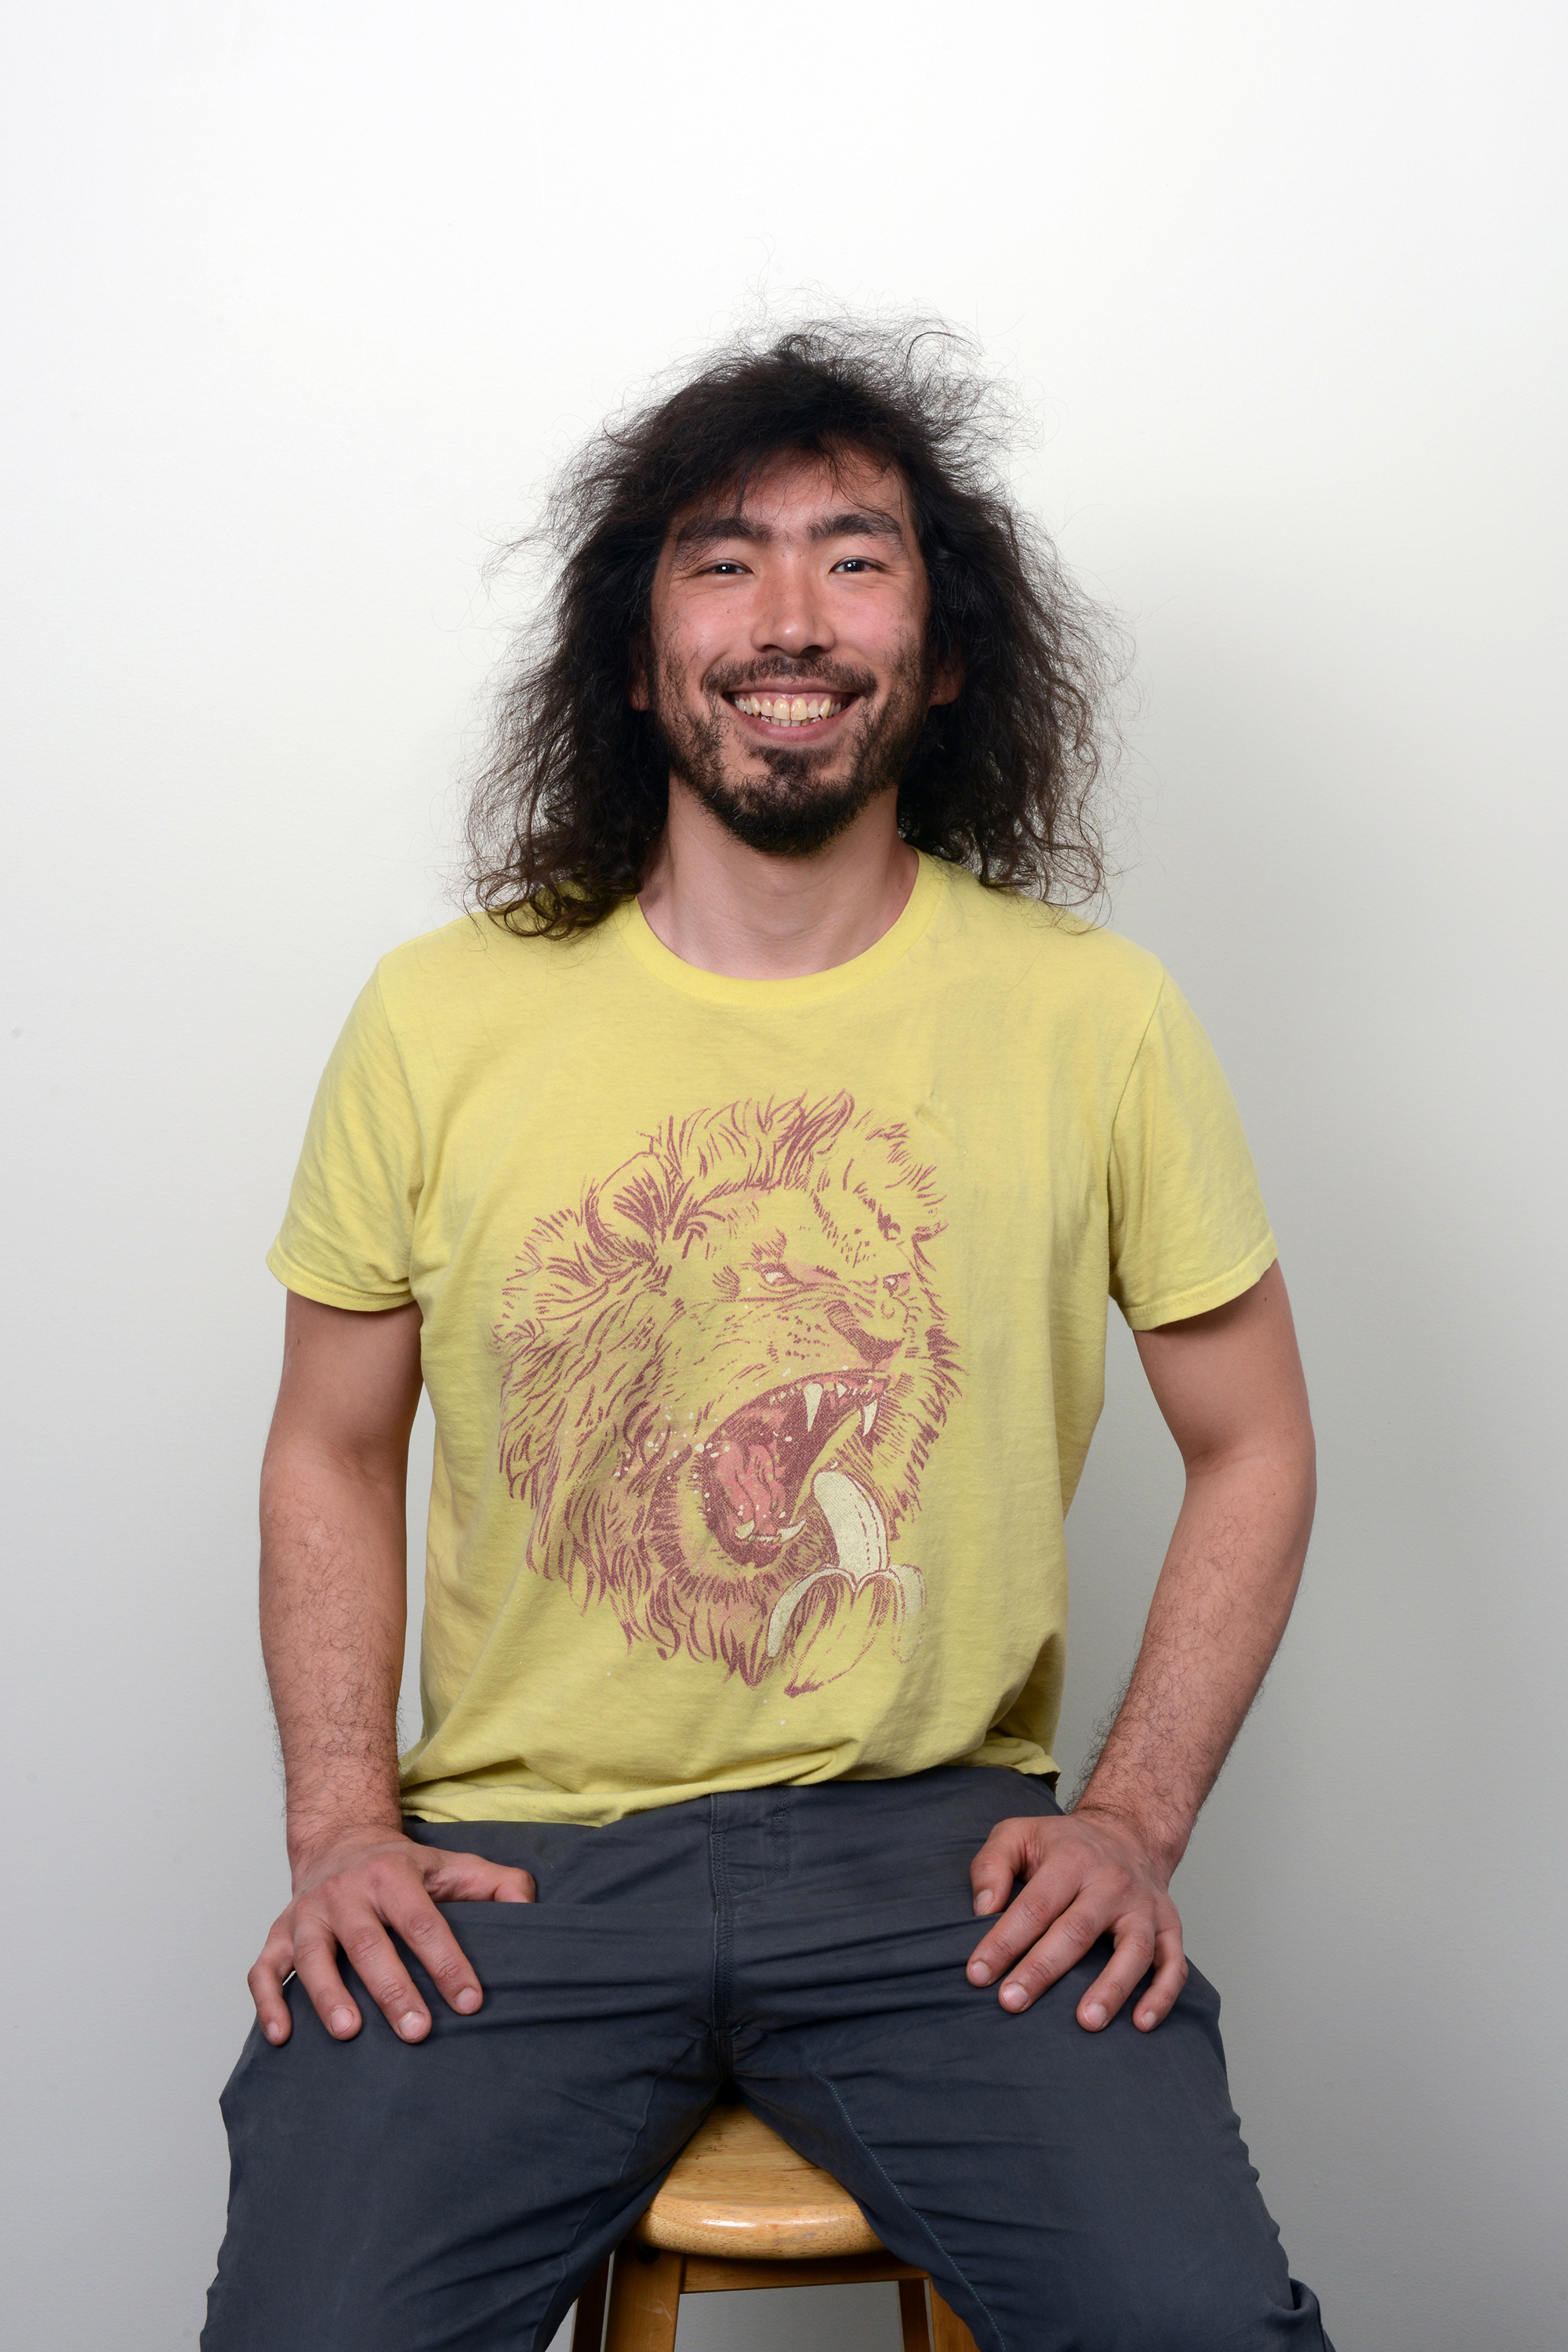 """Artist Biography - Peter Williams (Yup'ik Eskimo) was born and based in Alaska. As an interdisciplinary artist, he strives to express and celebrate the oneness of all things, with emphasis on the human spiritual relationship with nature. He produces high-end fur garments that blur the line between art and fashion. Under his label Shaman Furs, Williams carries on the historic art of elegant and simple textile construction built to endure the Alaskan elements. He has demonstrated the technique of sewing seal and sea otter fur by hand at Southeast Alaska Indian Cultural Center, Alaska State Museum and has taught skin sewing to college students at University of Alaska Fairbanks and Stanford University. In 2015 he presented at New York Fashion Week and was profiled in The Guardian. His first runway show was at Fashion Week Brooklyn, 2016. Later that year, the New York Times chief fashion critic, Vanessa Friedman, published an article on his work titled """"Is All Fur Bad Fur?"""" Williams completed a Rasmuson Foundation Artist Residency at Santa Fe Art Institute, a Artist in Residence at Institute of American Indian Arts and has guest lectured at Yale University, Portland Art Museum, and 516 ARTS. Williams was awarded a 2018 First Peoples Fund Artist in Business Leadership Fellowship he is a 2019 Cultural Capital Fellow."""